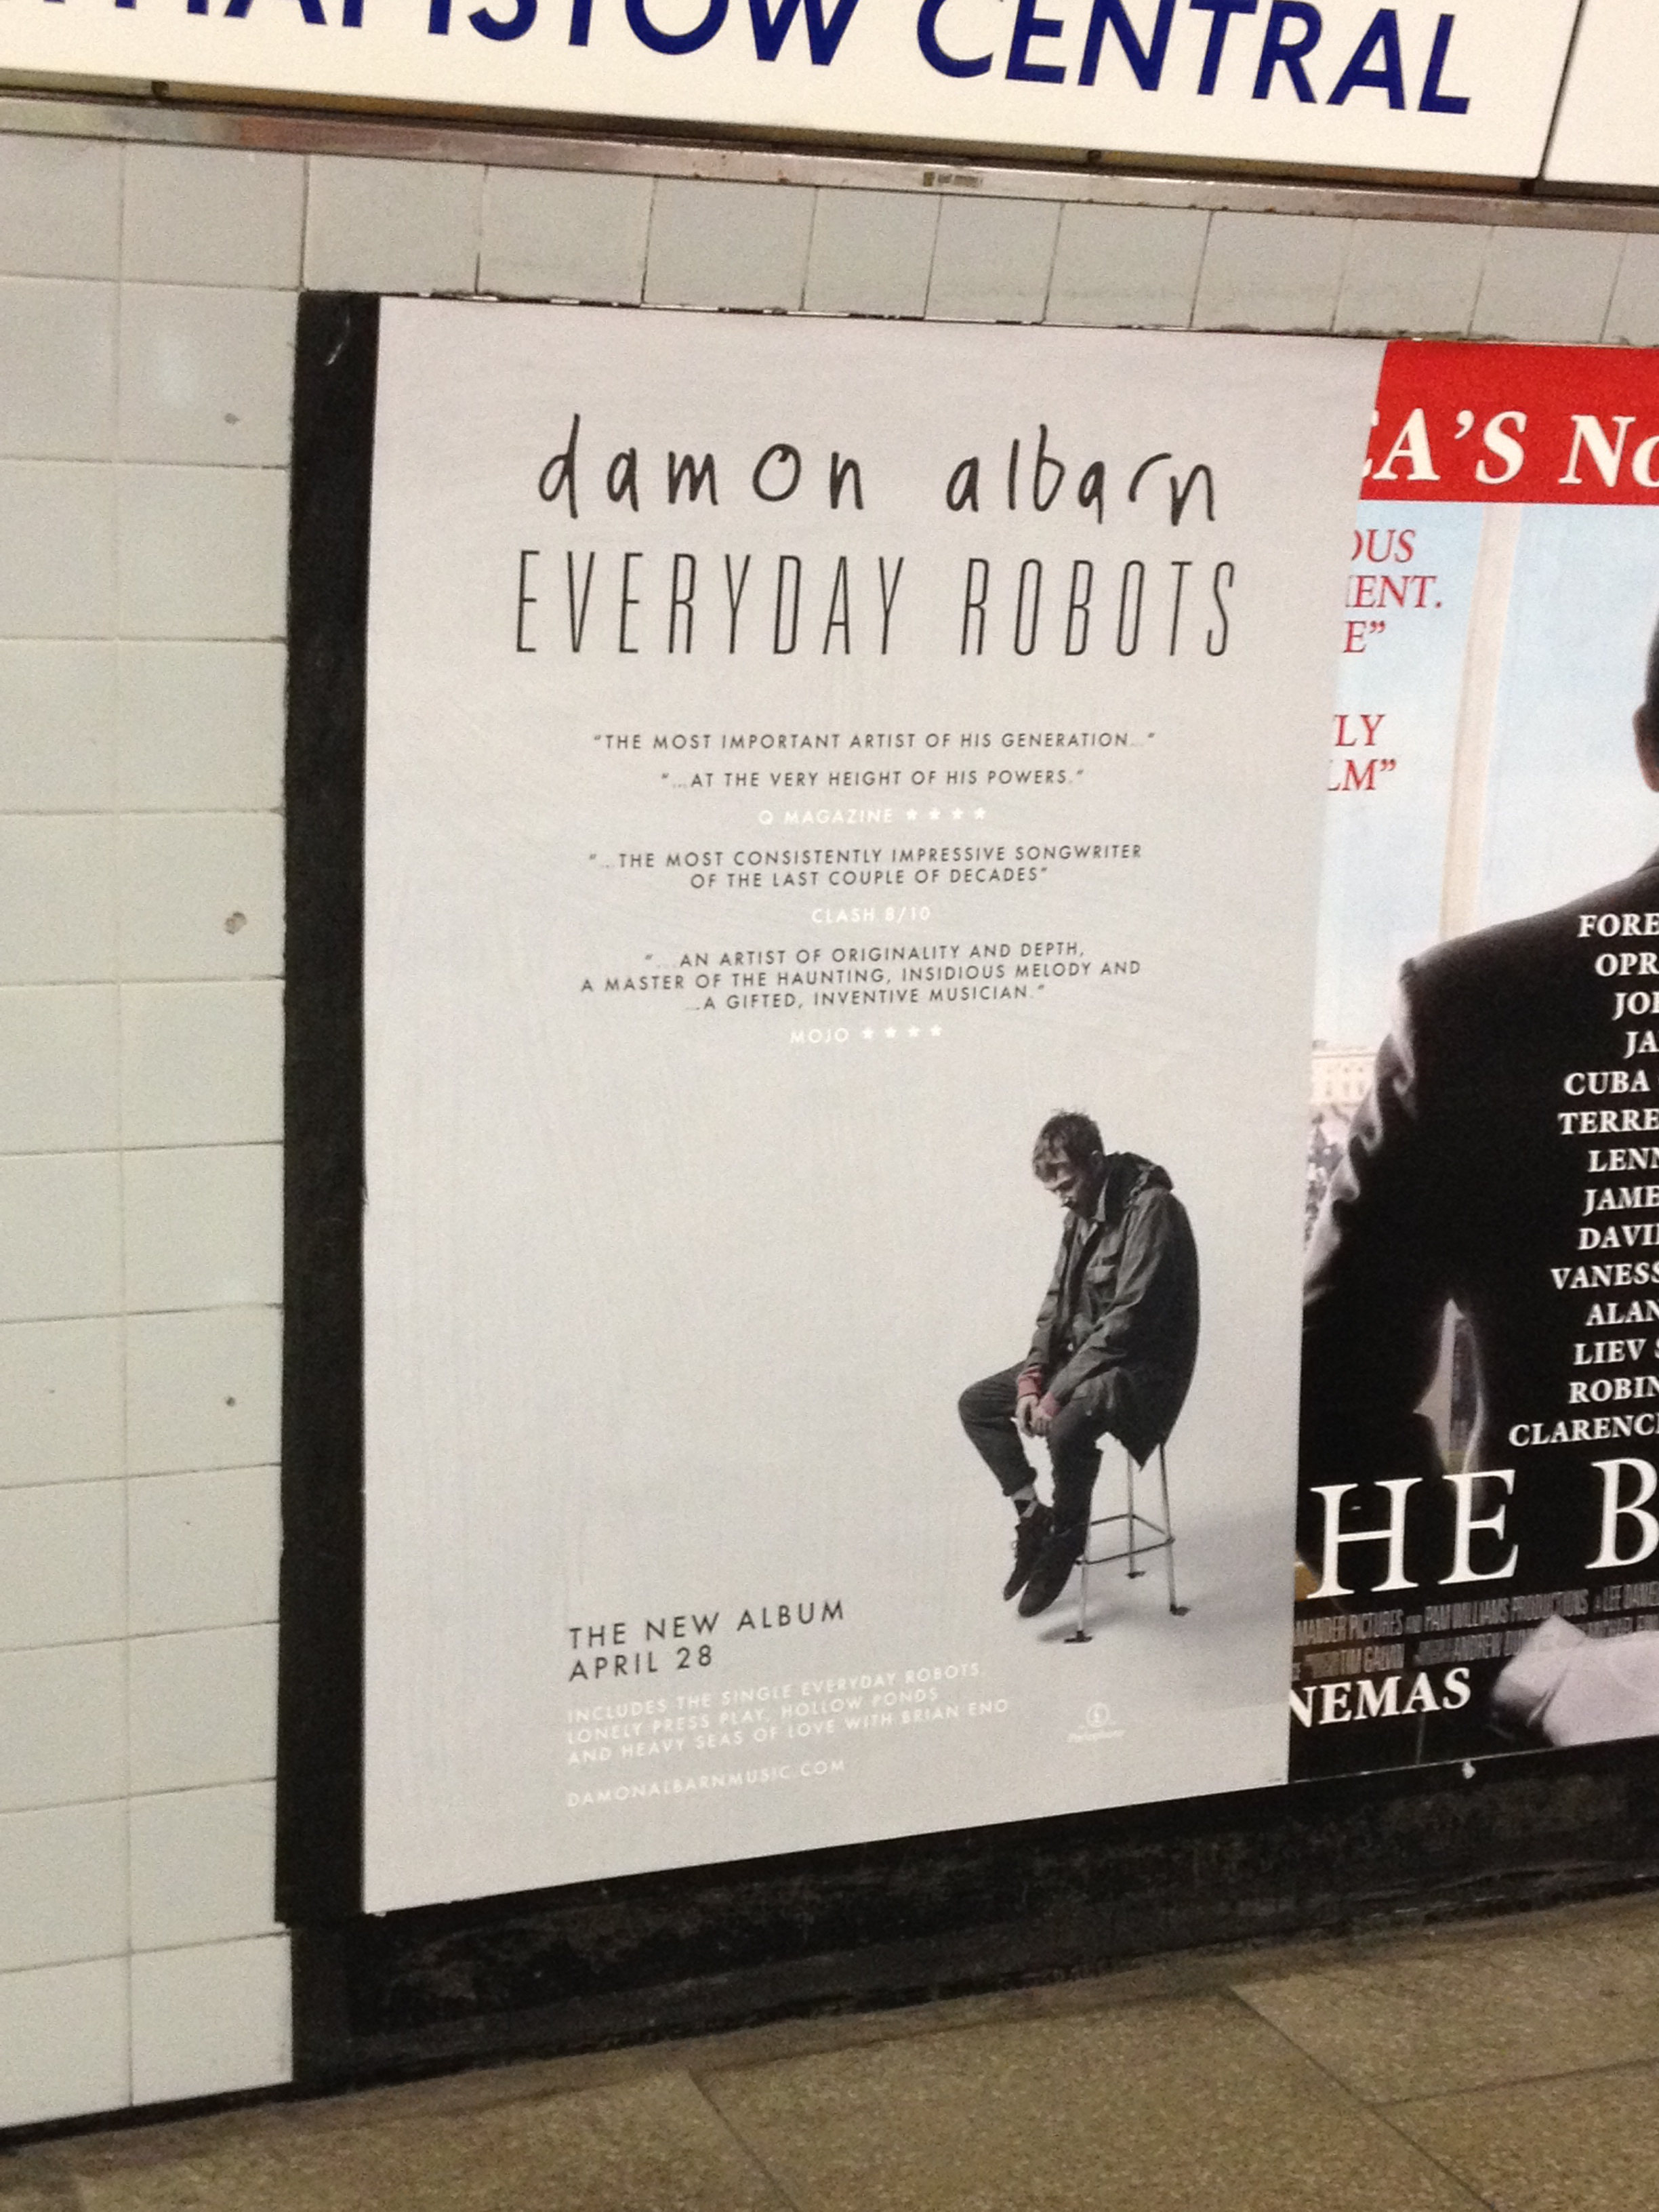 Damon Albarn - Everyday Robots ad, Apr 25, 2014, AL